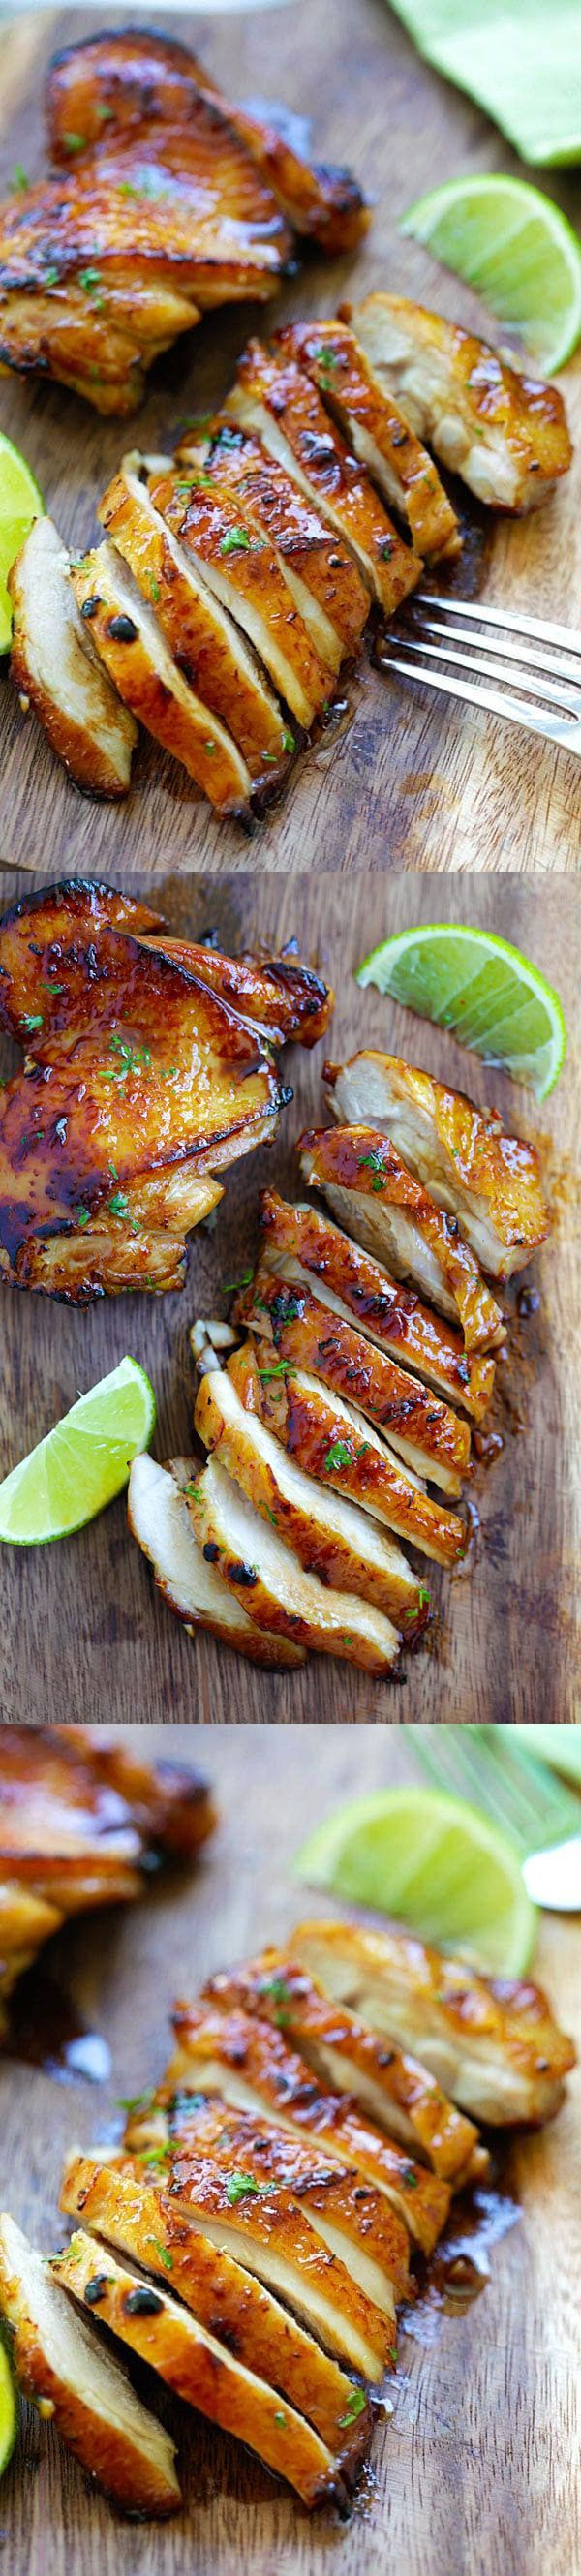 How To Make Honey Lime Chicken | Food Recipes | Chicken is our favorite protein; I make chicken many times a week so I am constantly developing new recipes. This honey lime chicken is inspired by a recipe on Eating Well, but I simplified the recipe to make it easier for you. This honey lime chicken recipe turned out to be a perfect 10. It's a... #Baked, #Chicken, #Healthy, #Honey, #Lime, #Recipes, #Sauce #honeylimechicken